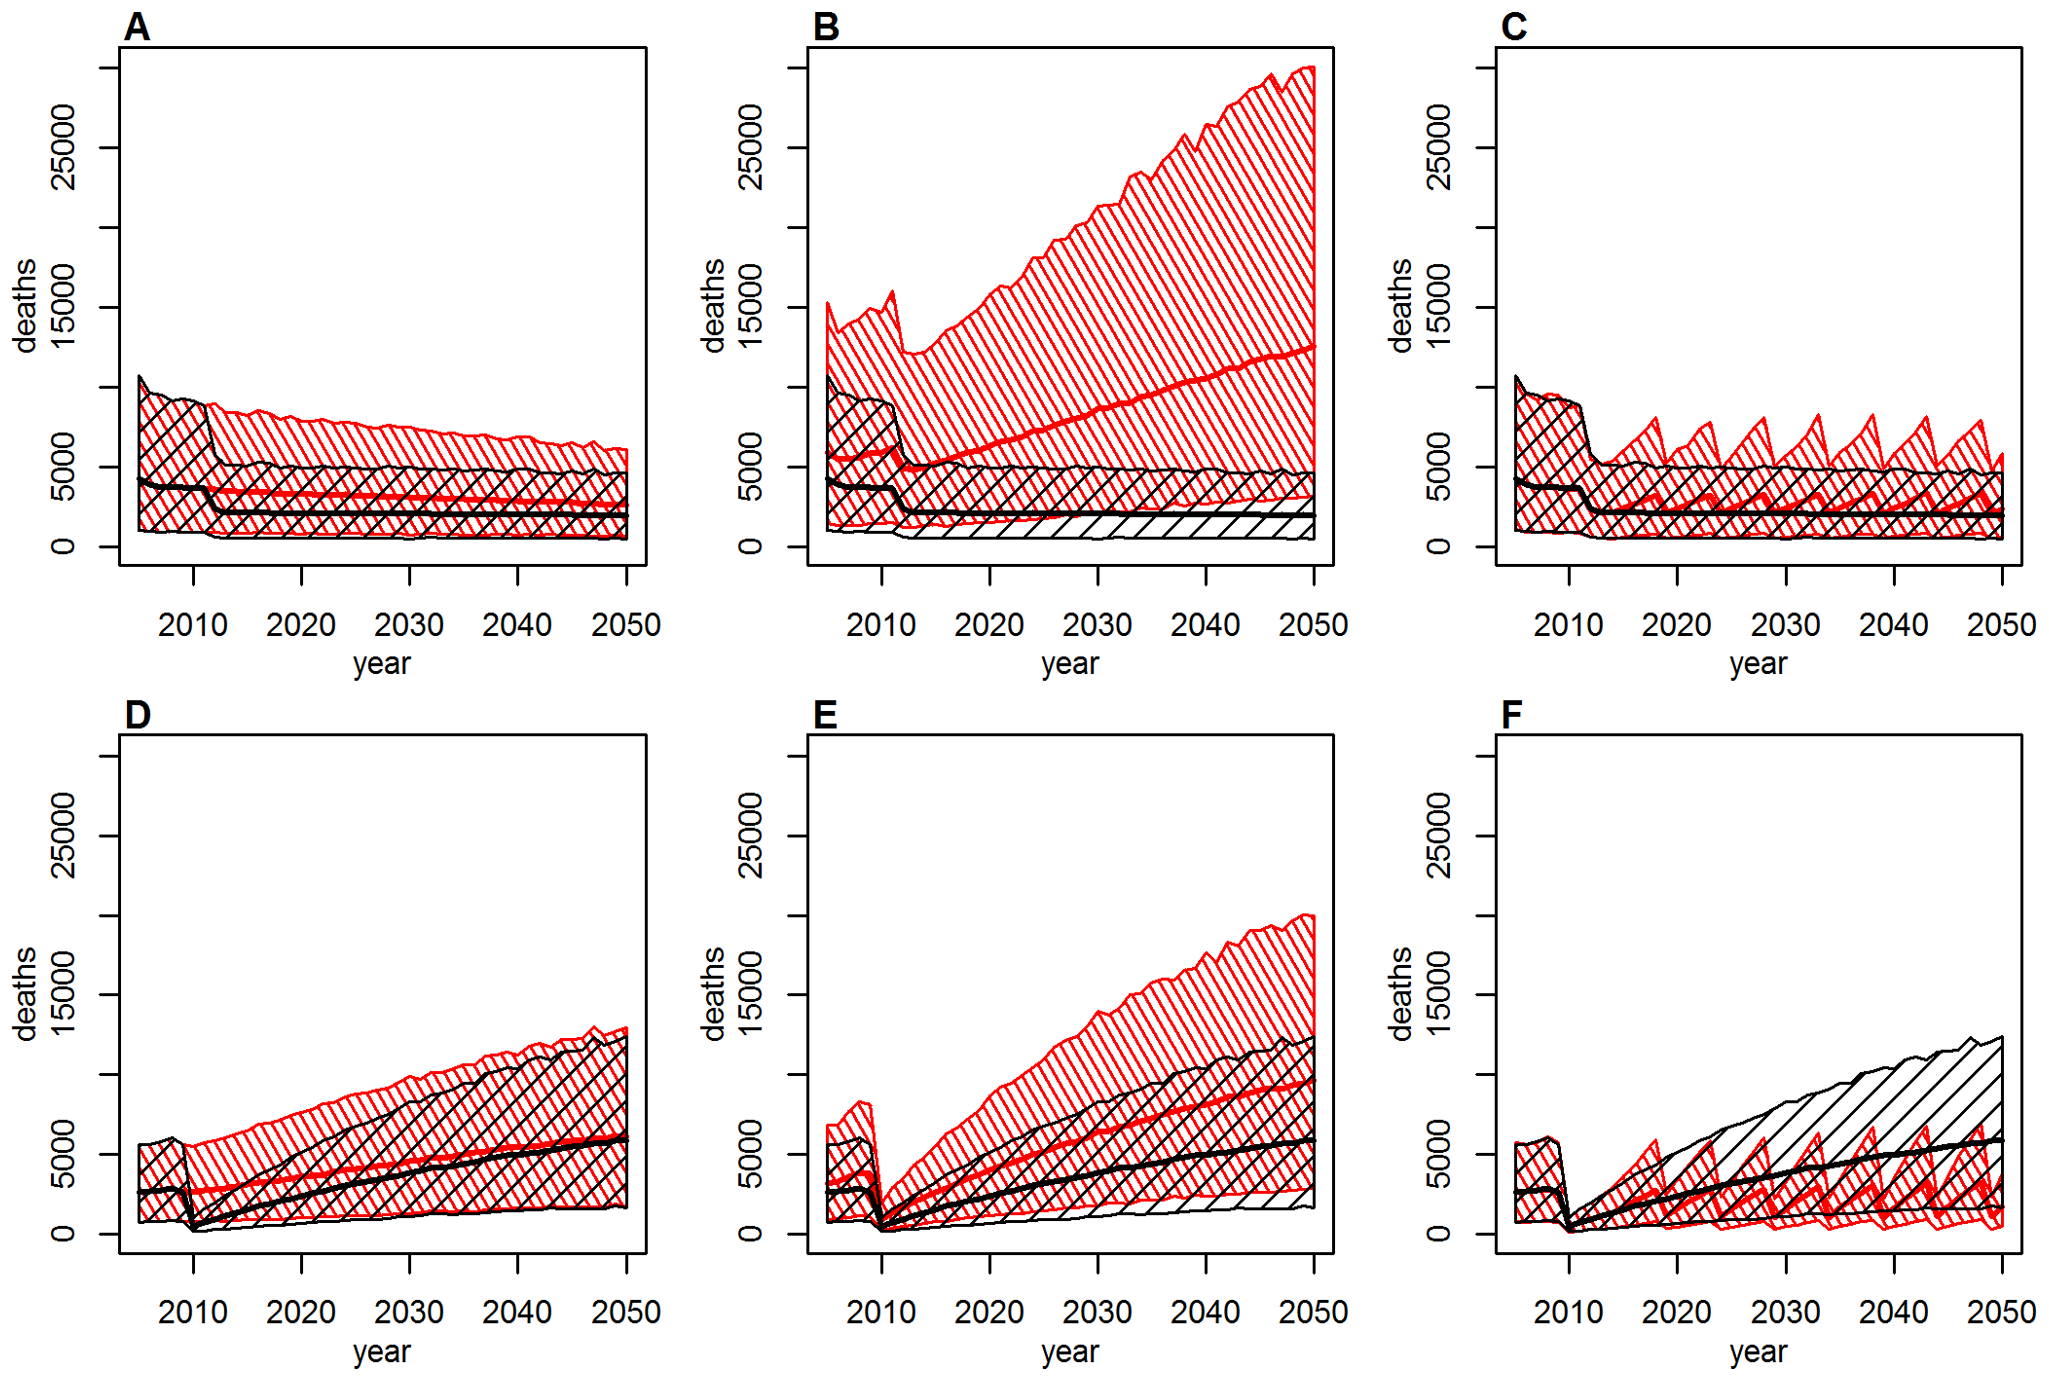 Deaths over time under various vaccination coverage scenarios for Ghana (top: A–C) and Liberia (bottom: D–F).